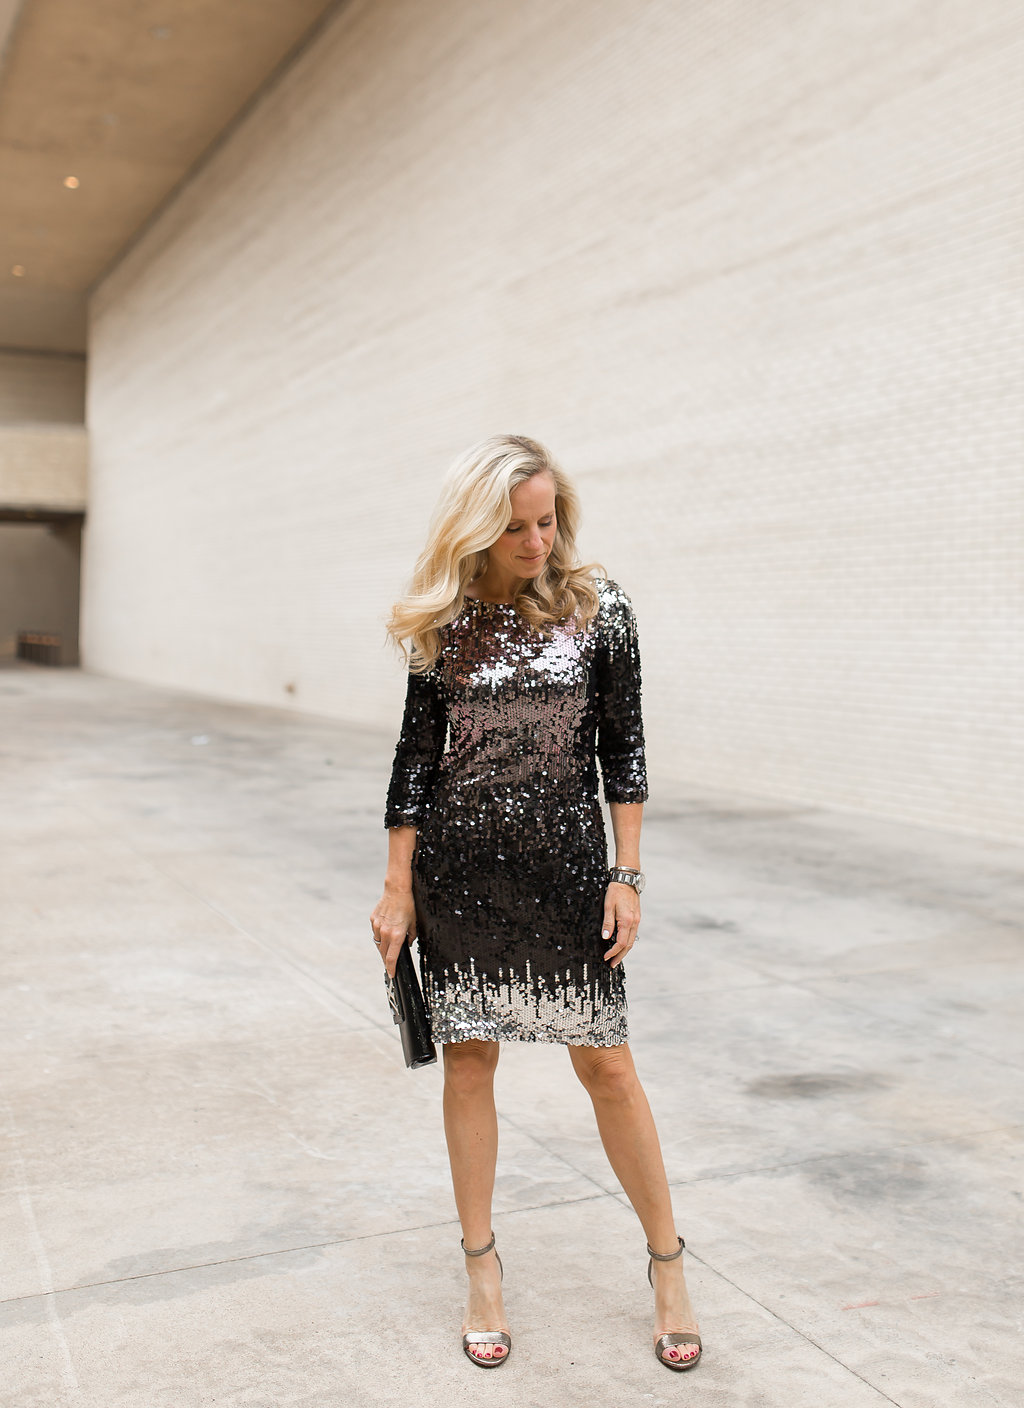 A Little Sparkle For New Year's Eve